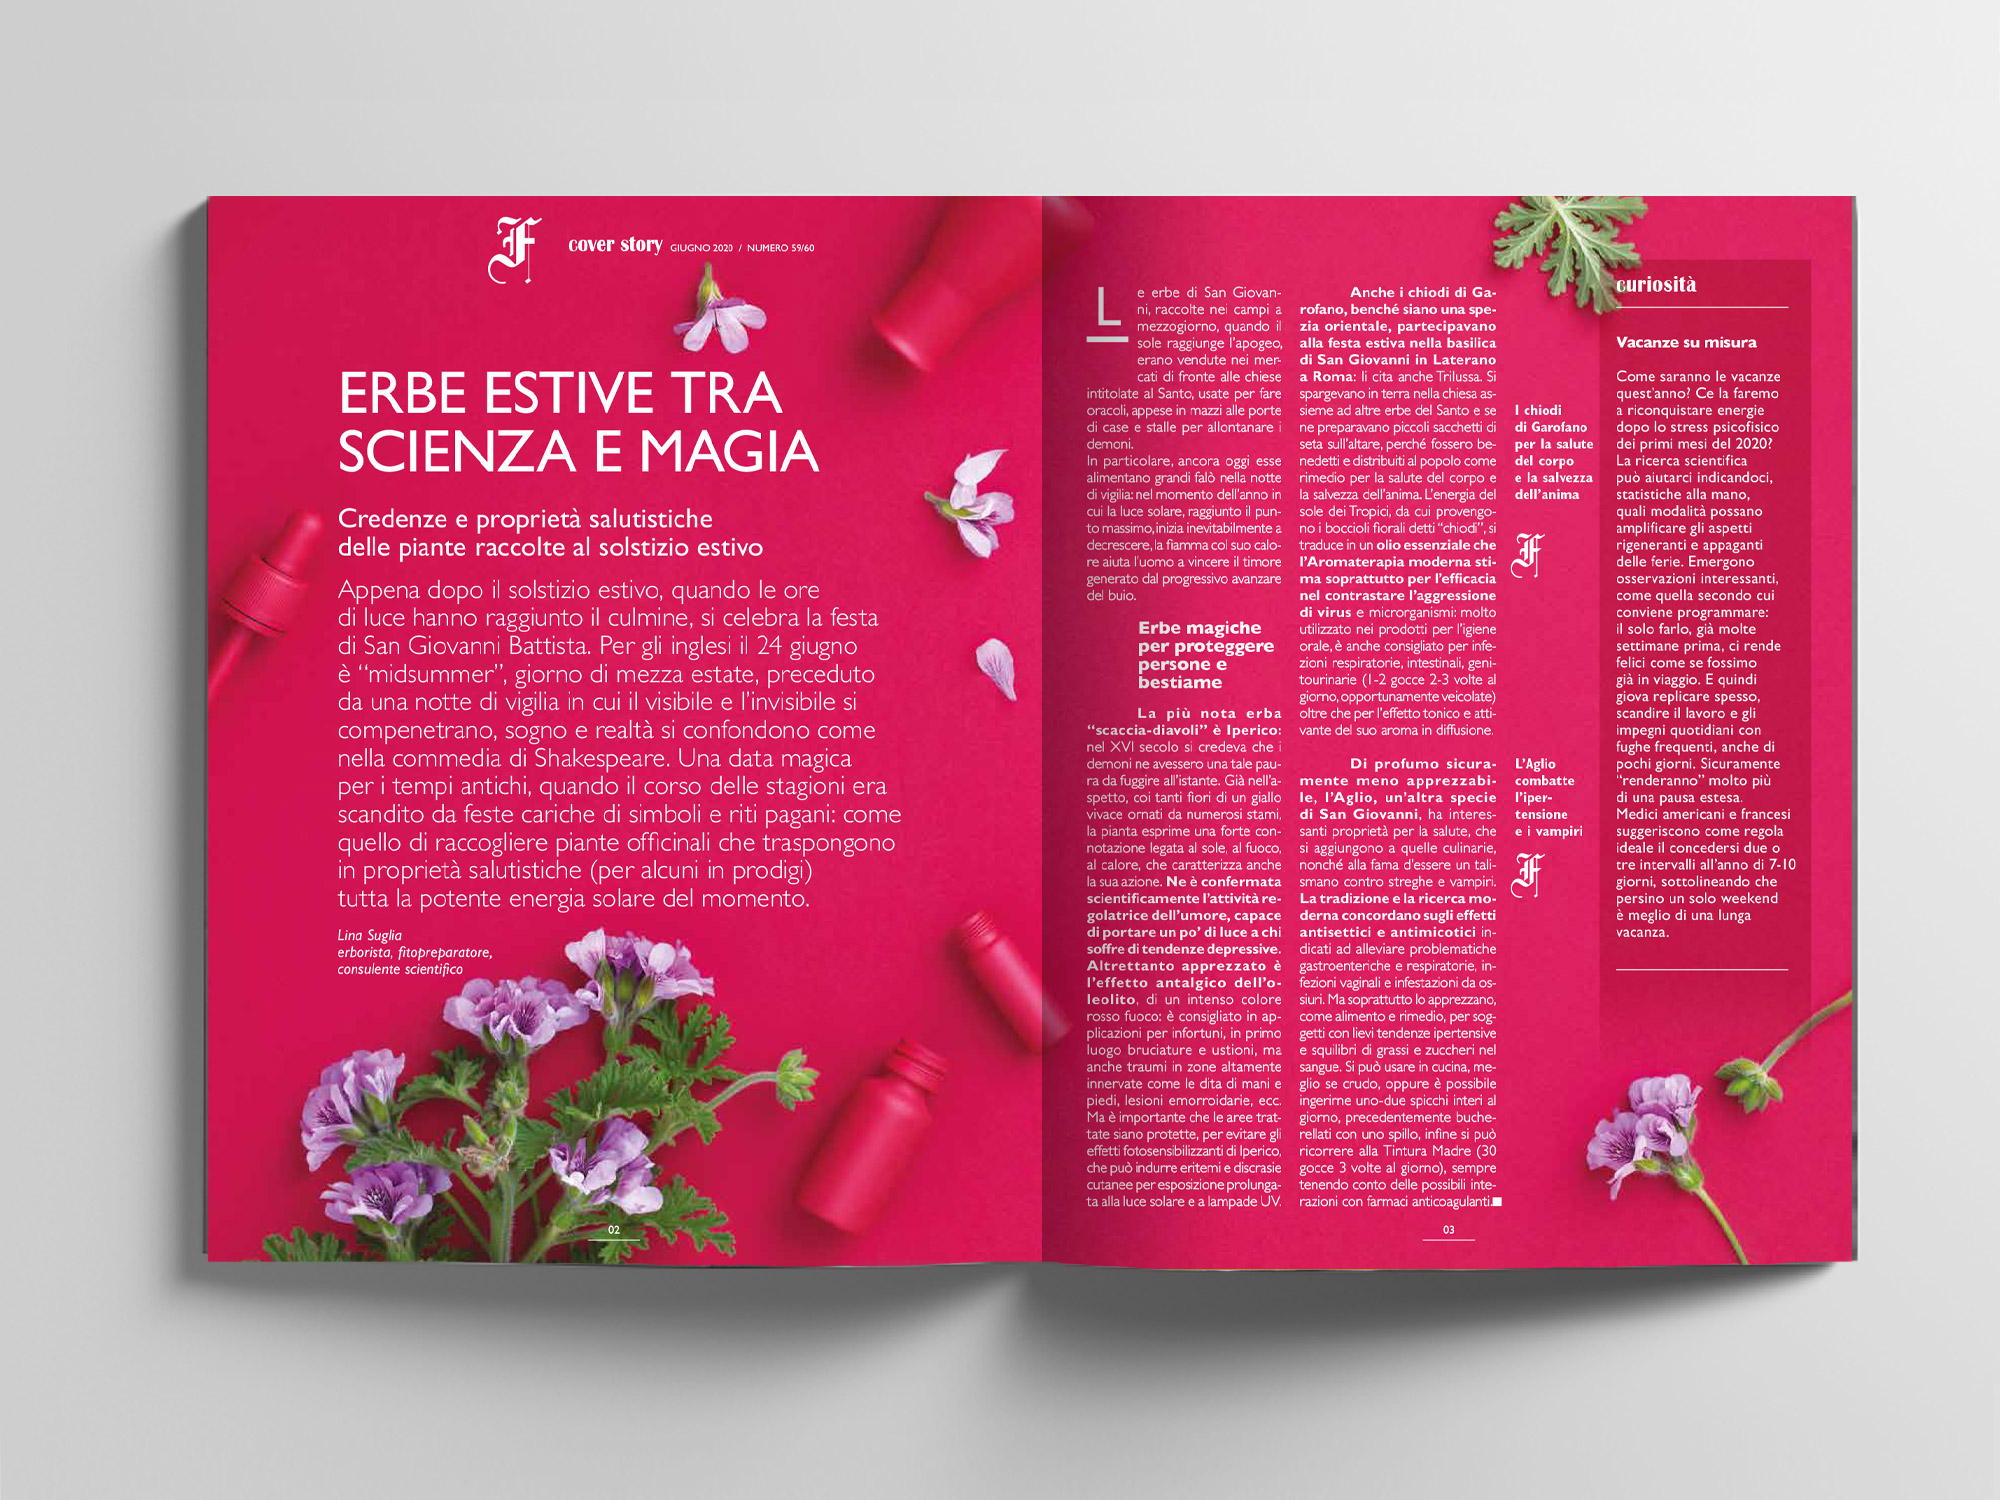 La Magia dell'estate – Fitonews n°59-60/2020